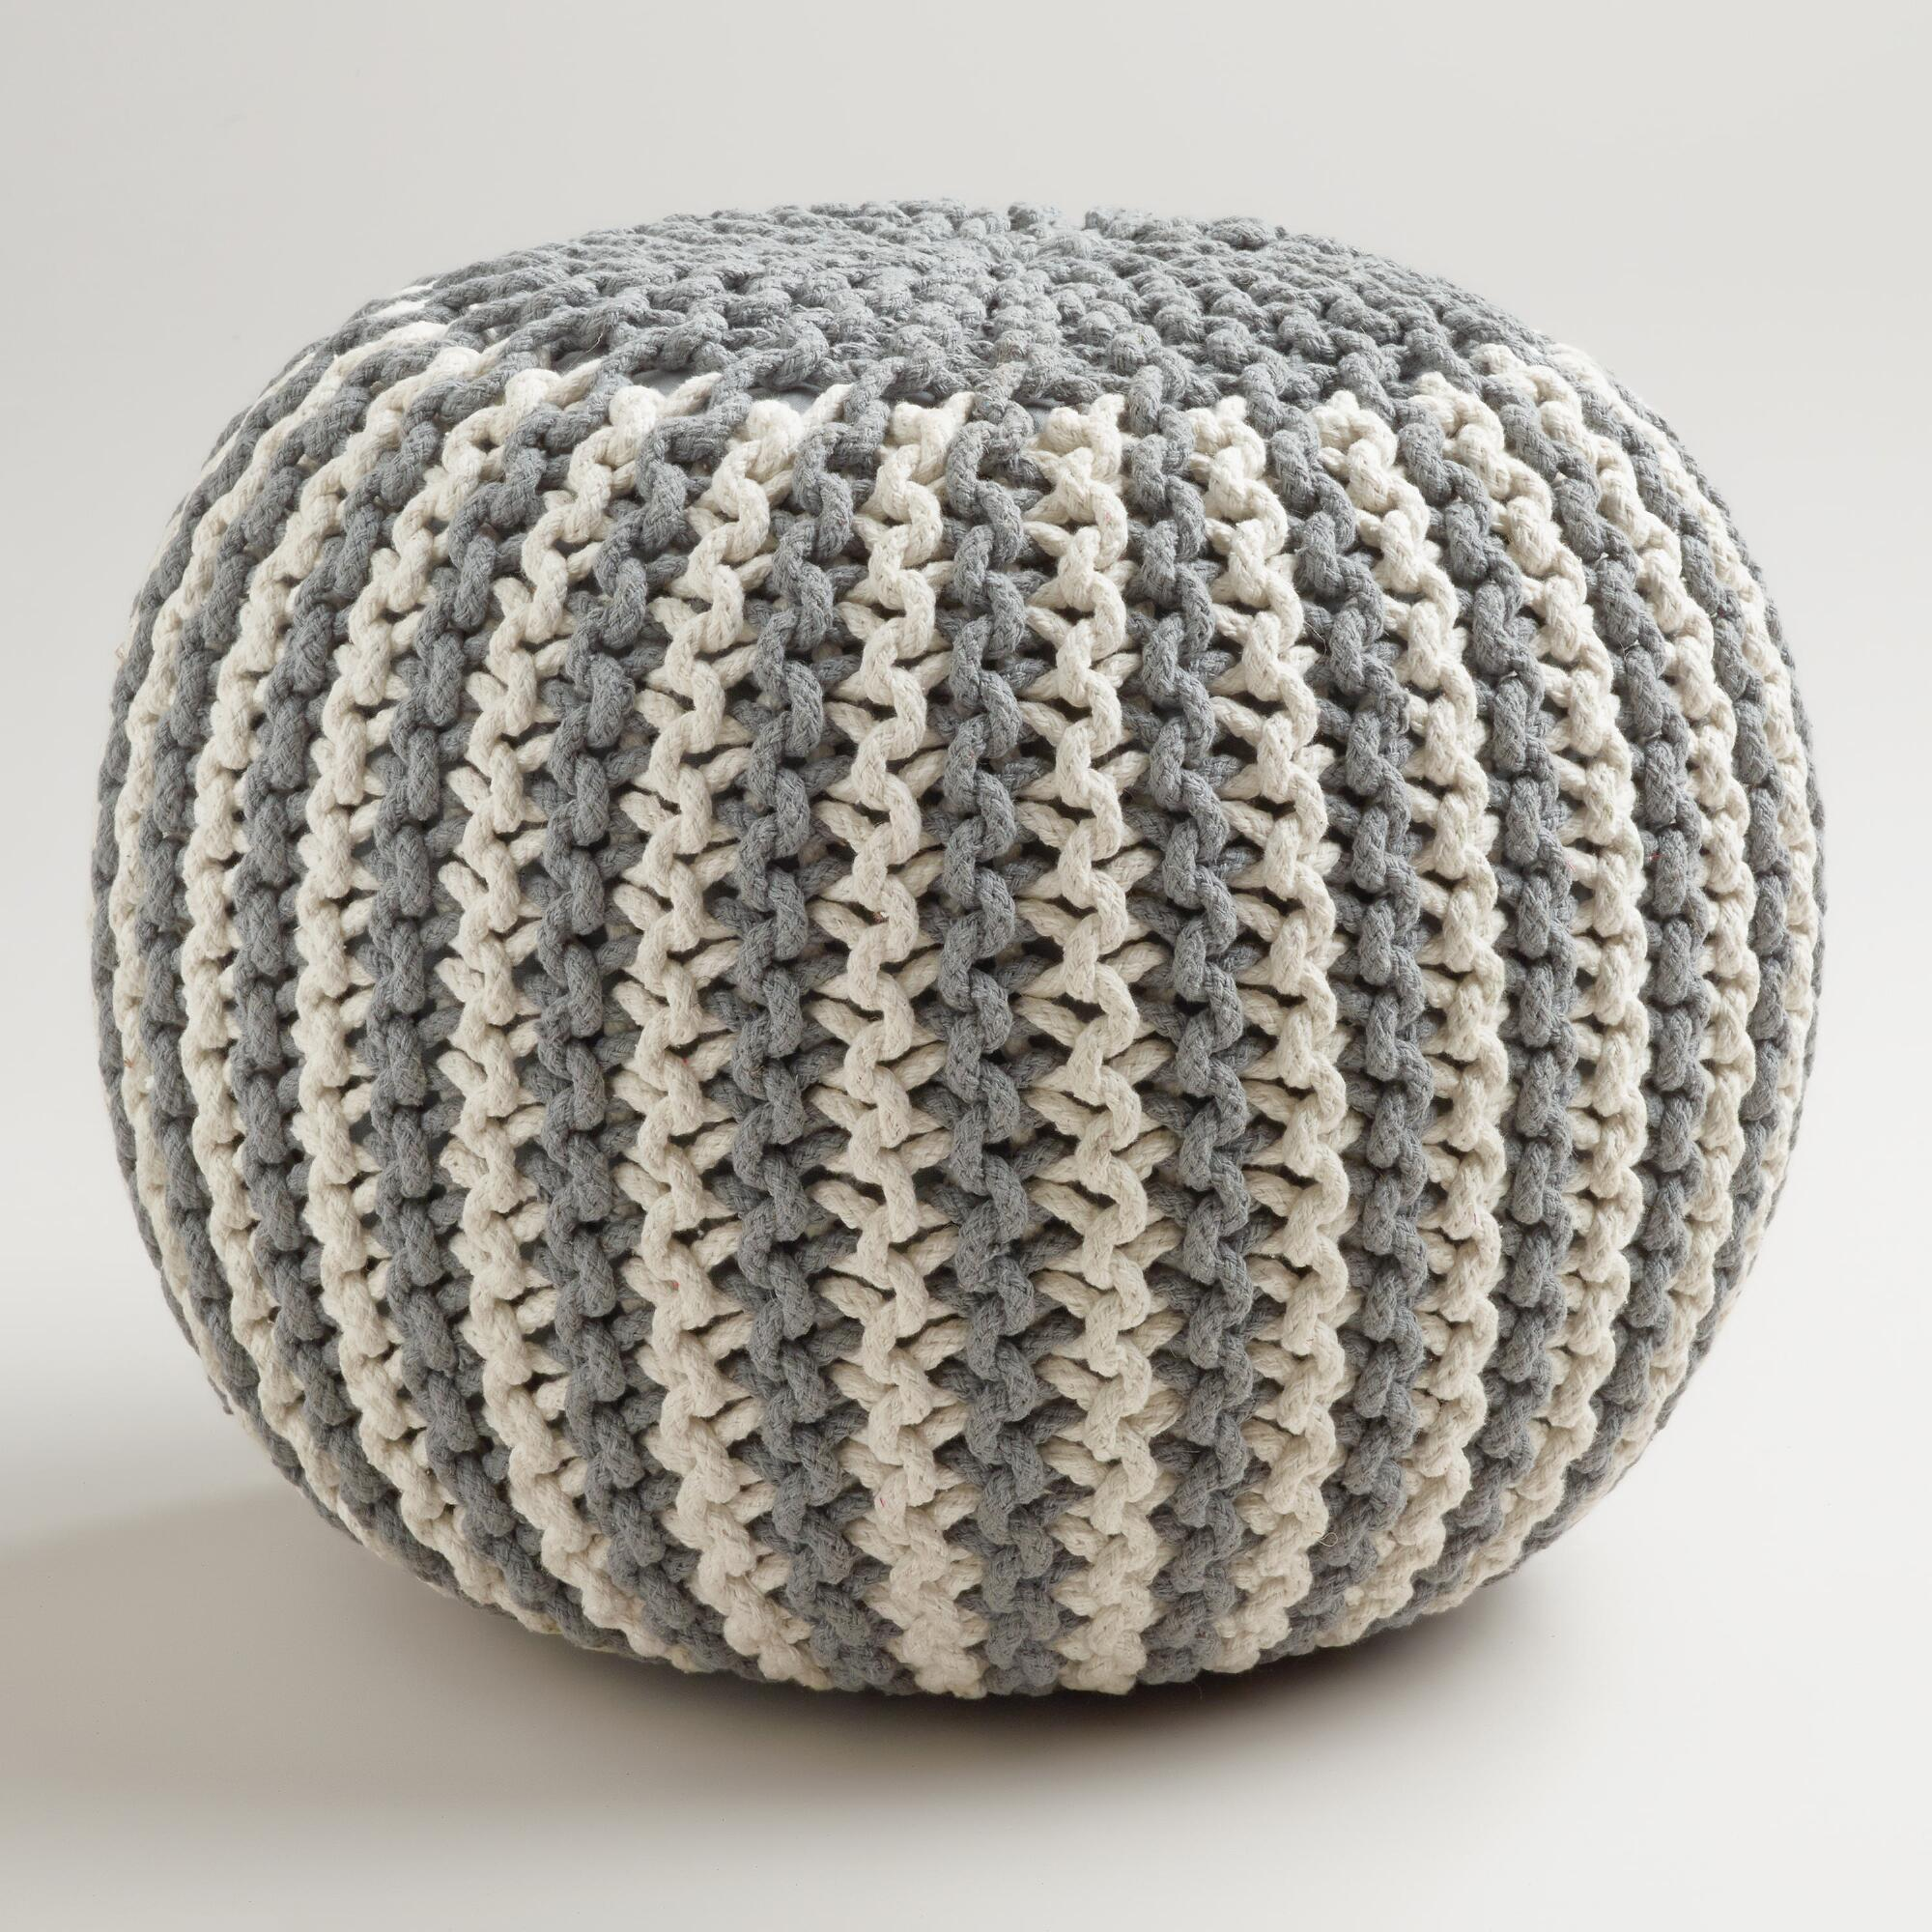 Knitted Ribbing Patterns : Two-Tone Knitted Pouf World Market